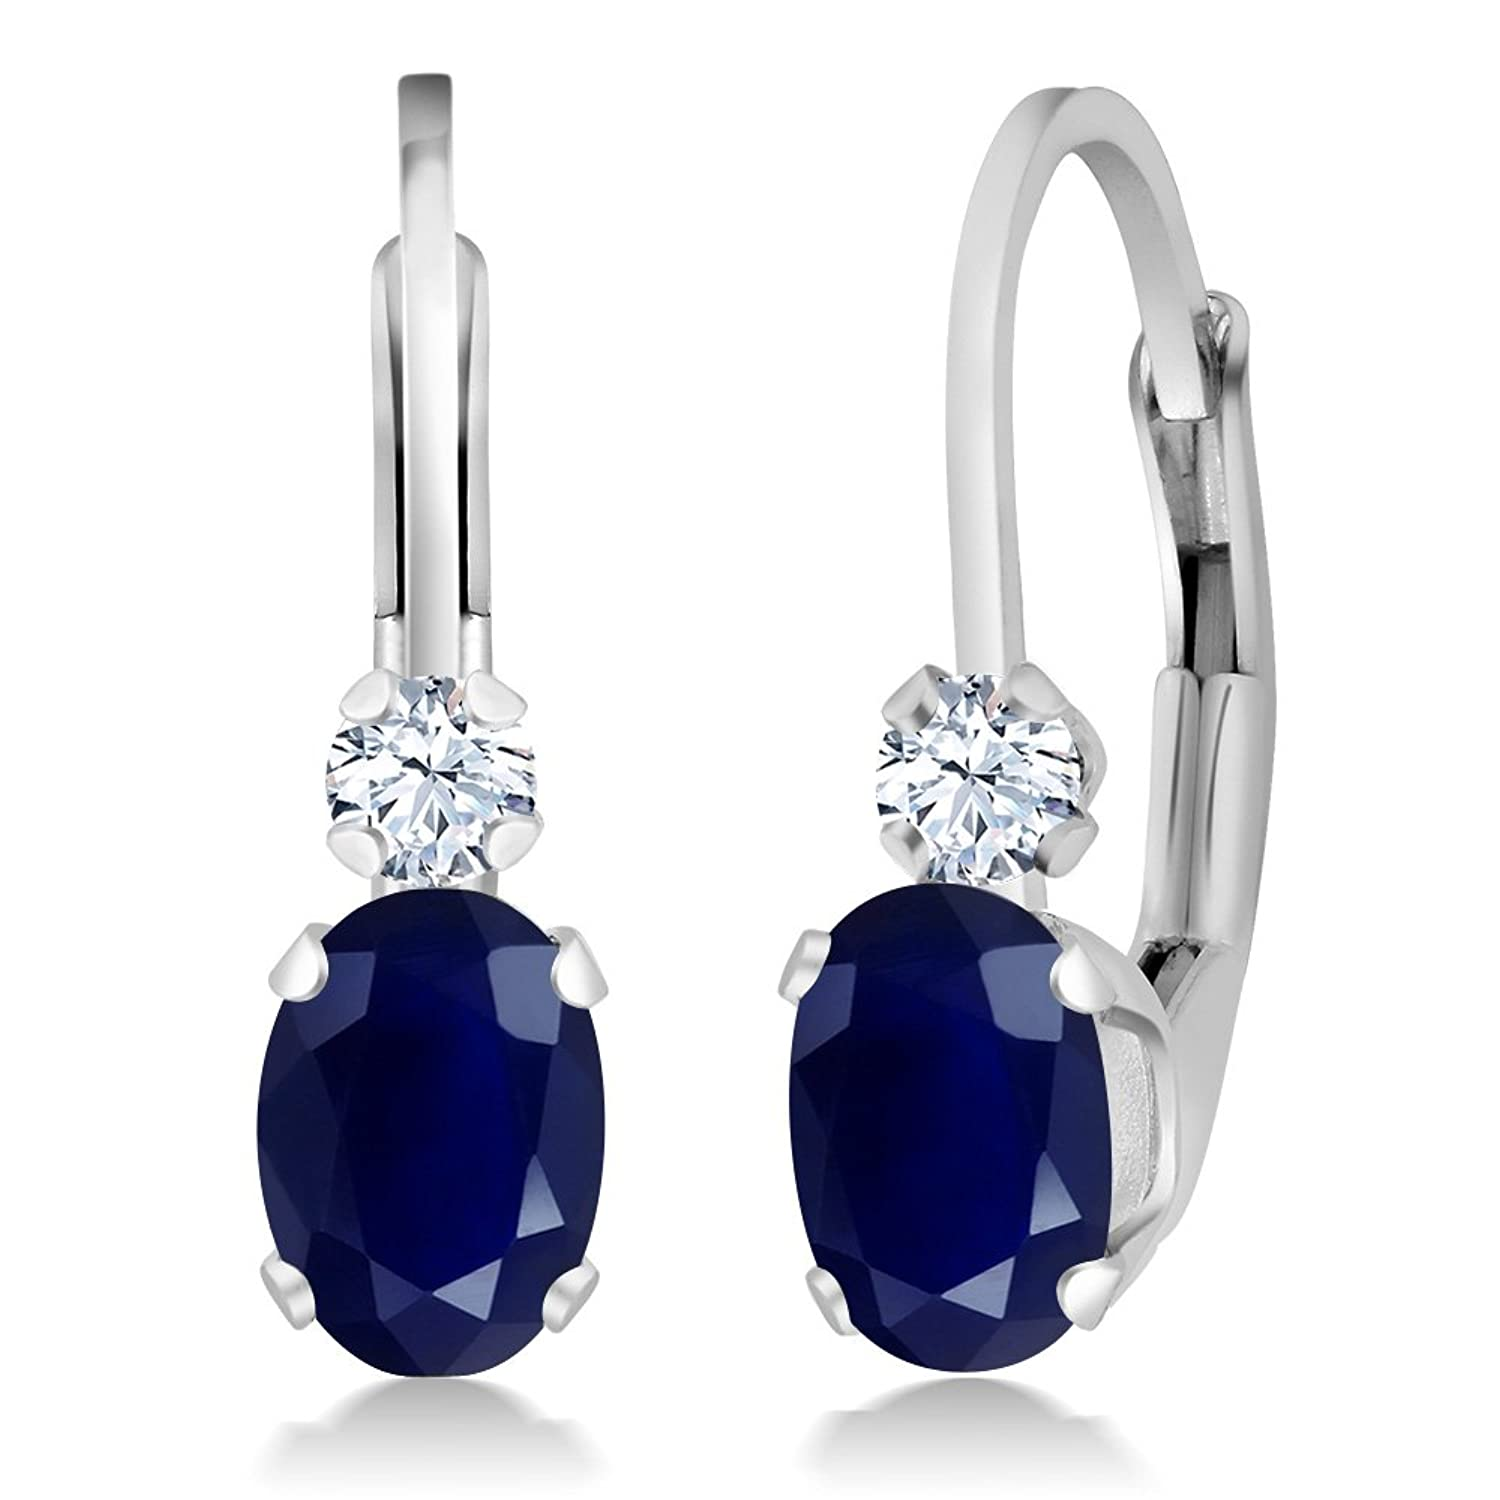 1.18 Ct Oval Blue Sapphire and White Sapphire 925 Sterling Silver Leverback Earrings For Women